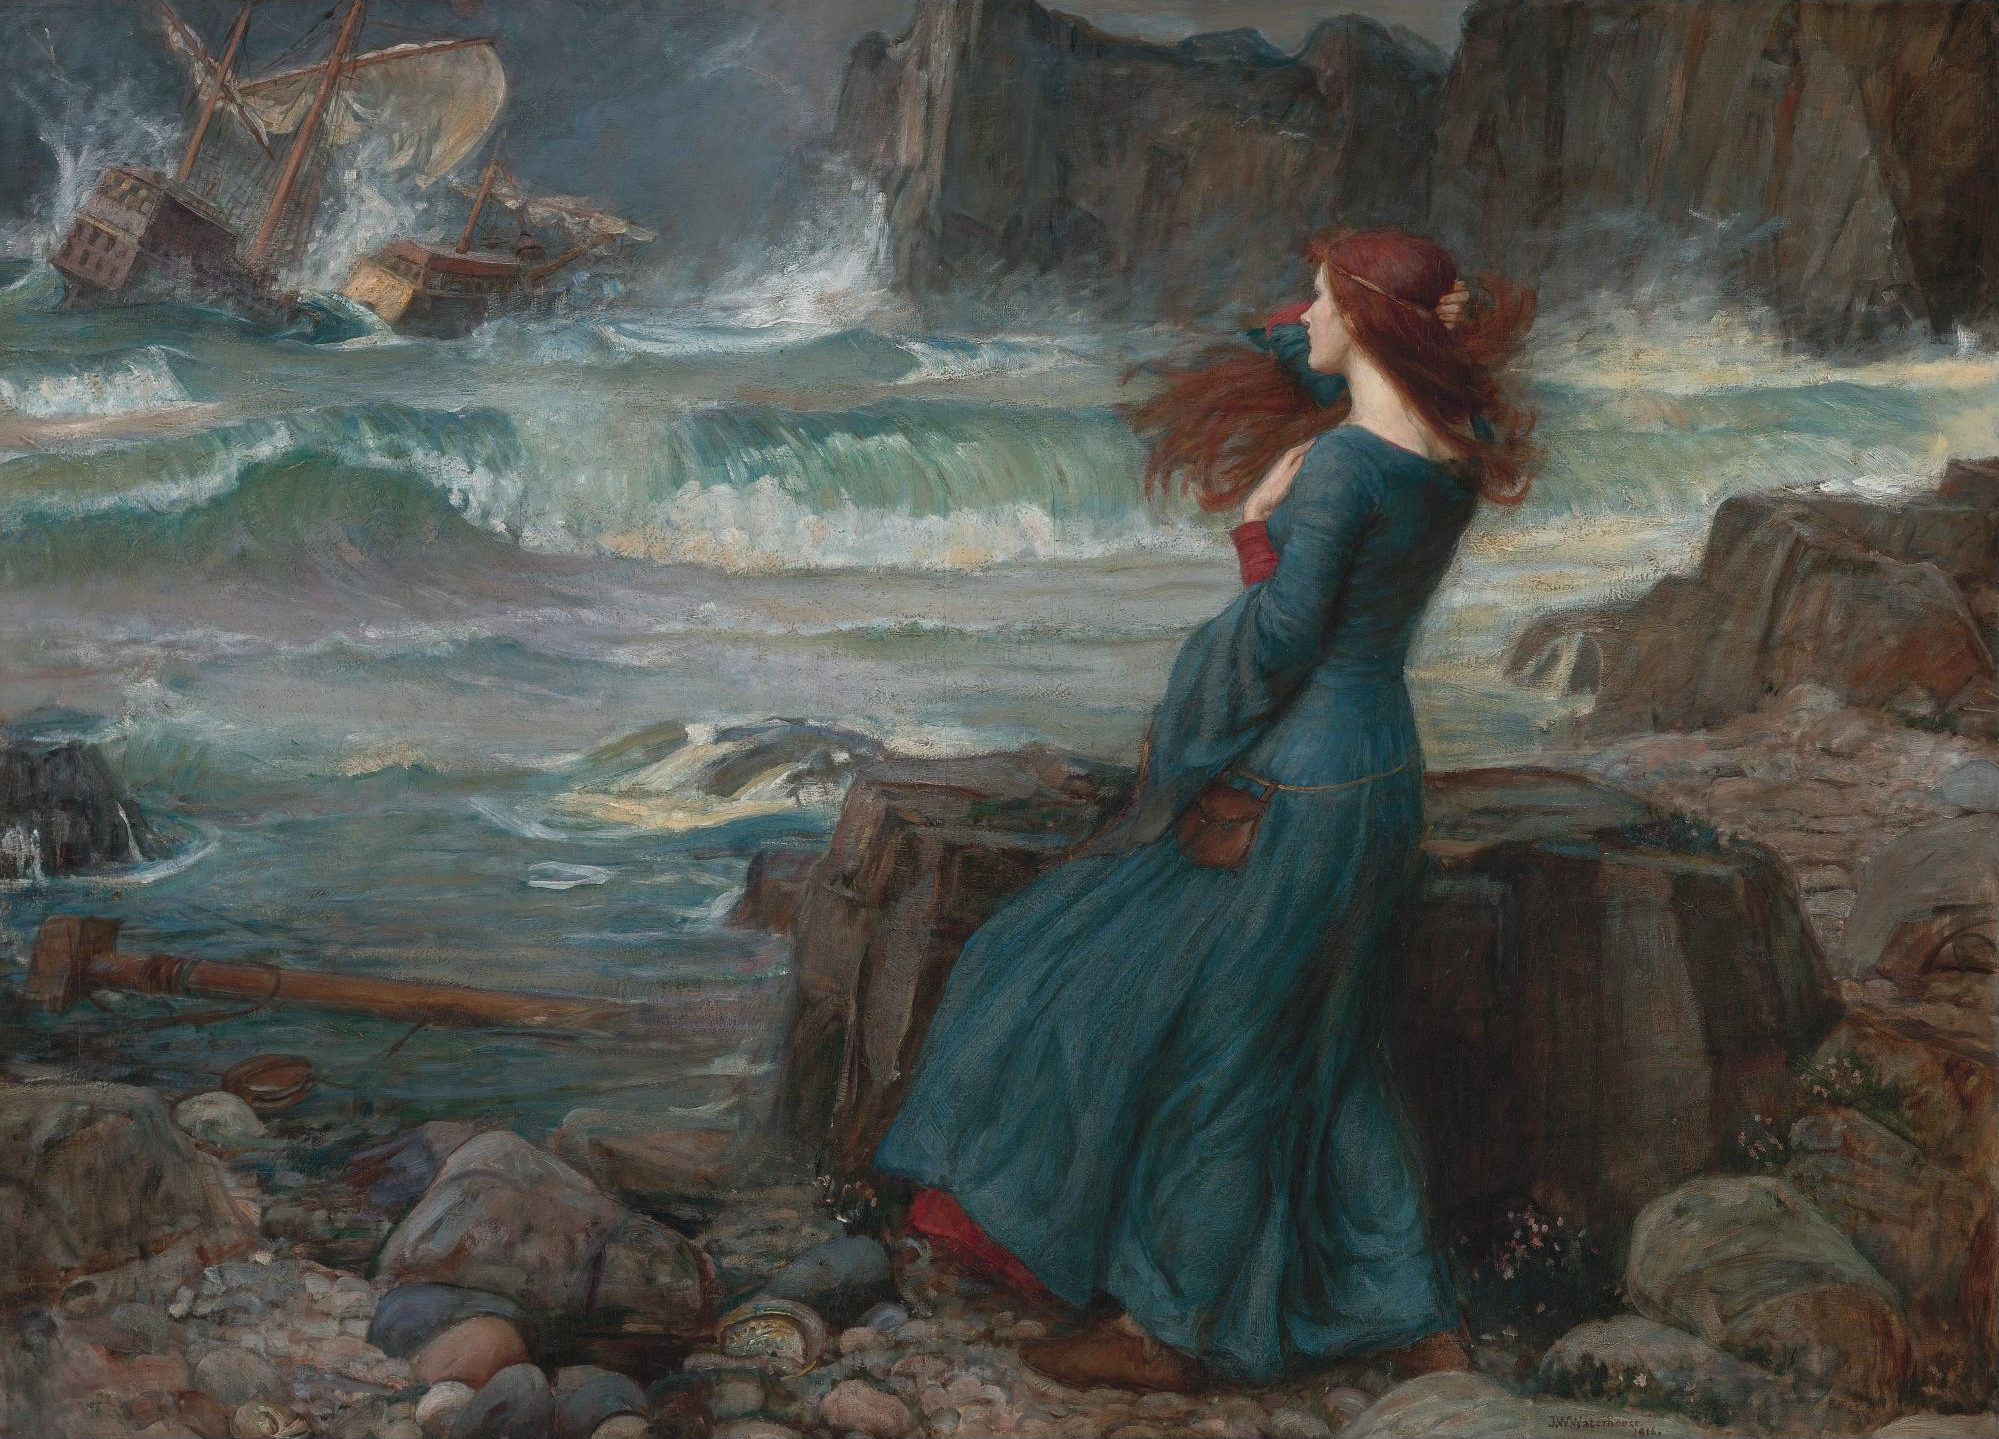 http://upload.wikimedia.org/wikipedia/commons/2/2d/Miranda_-_The_Tempest_JWW.jpg